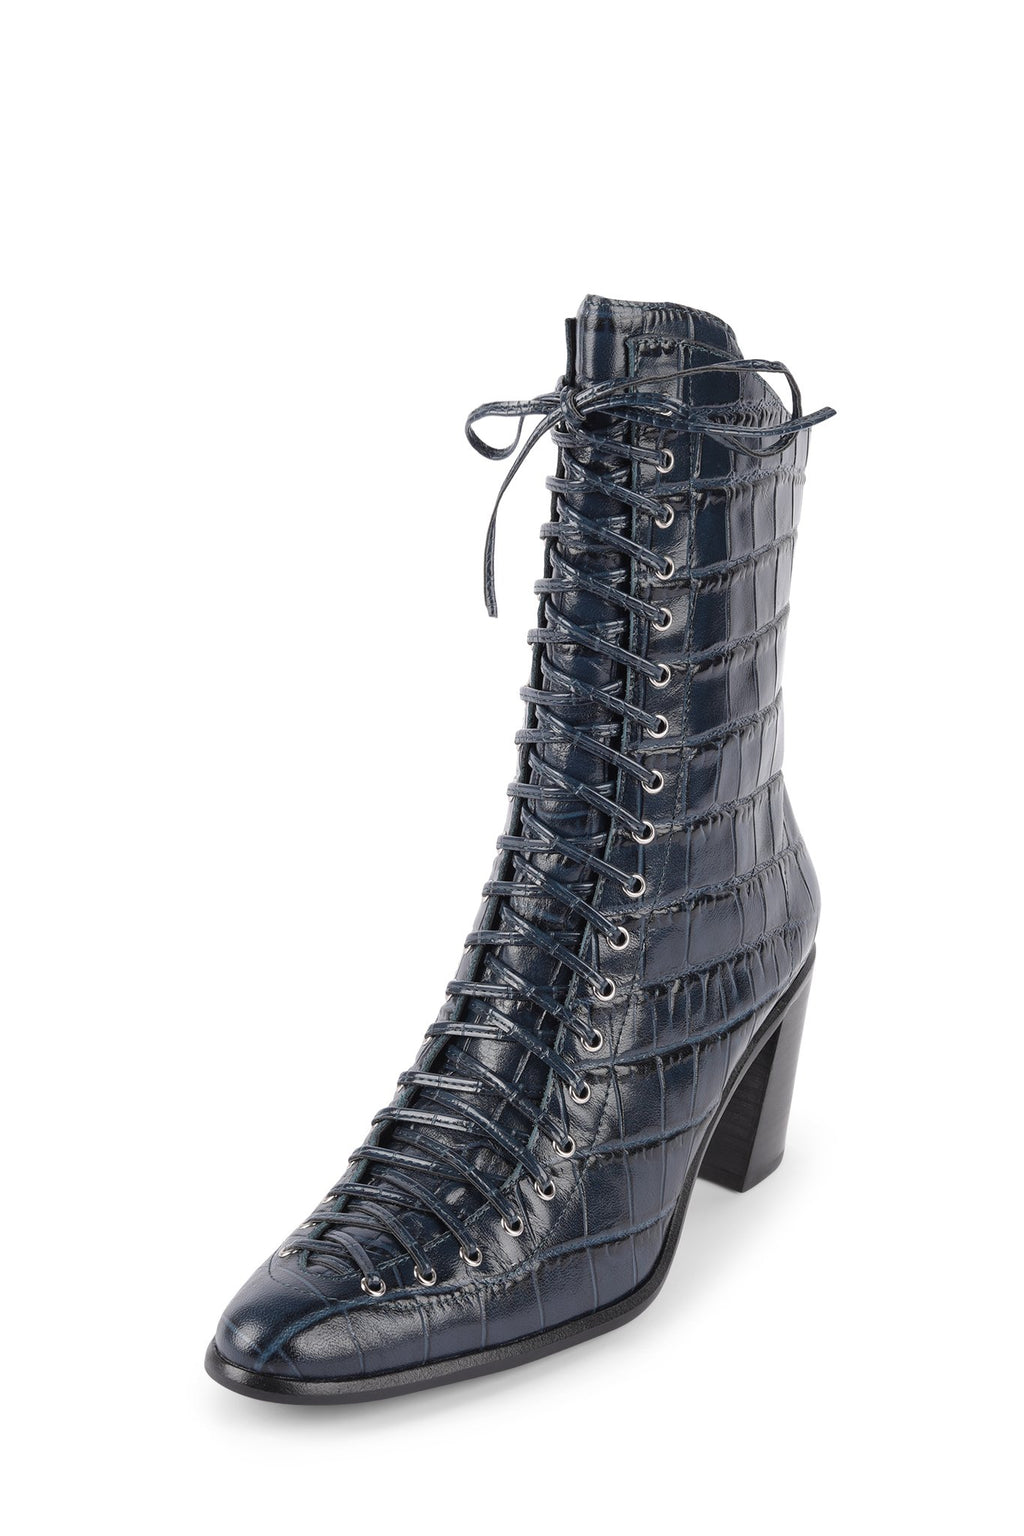 ARCHILLE Mid-Calf Boot YYH